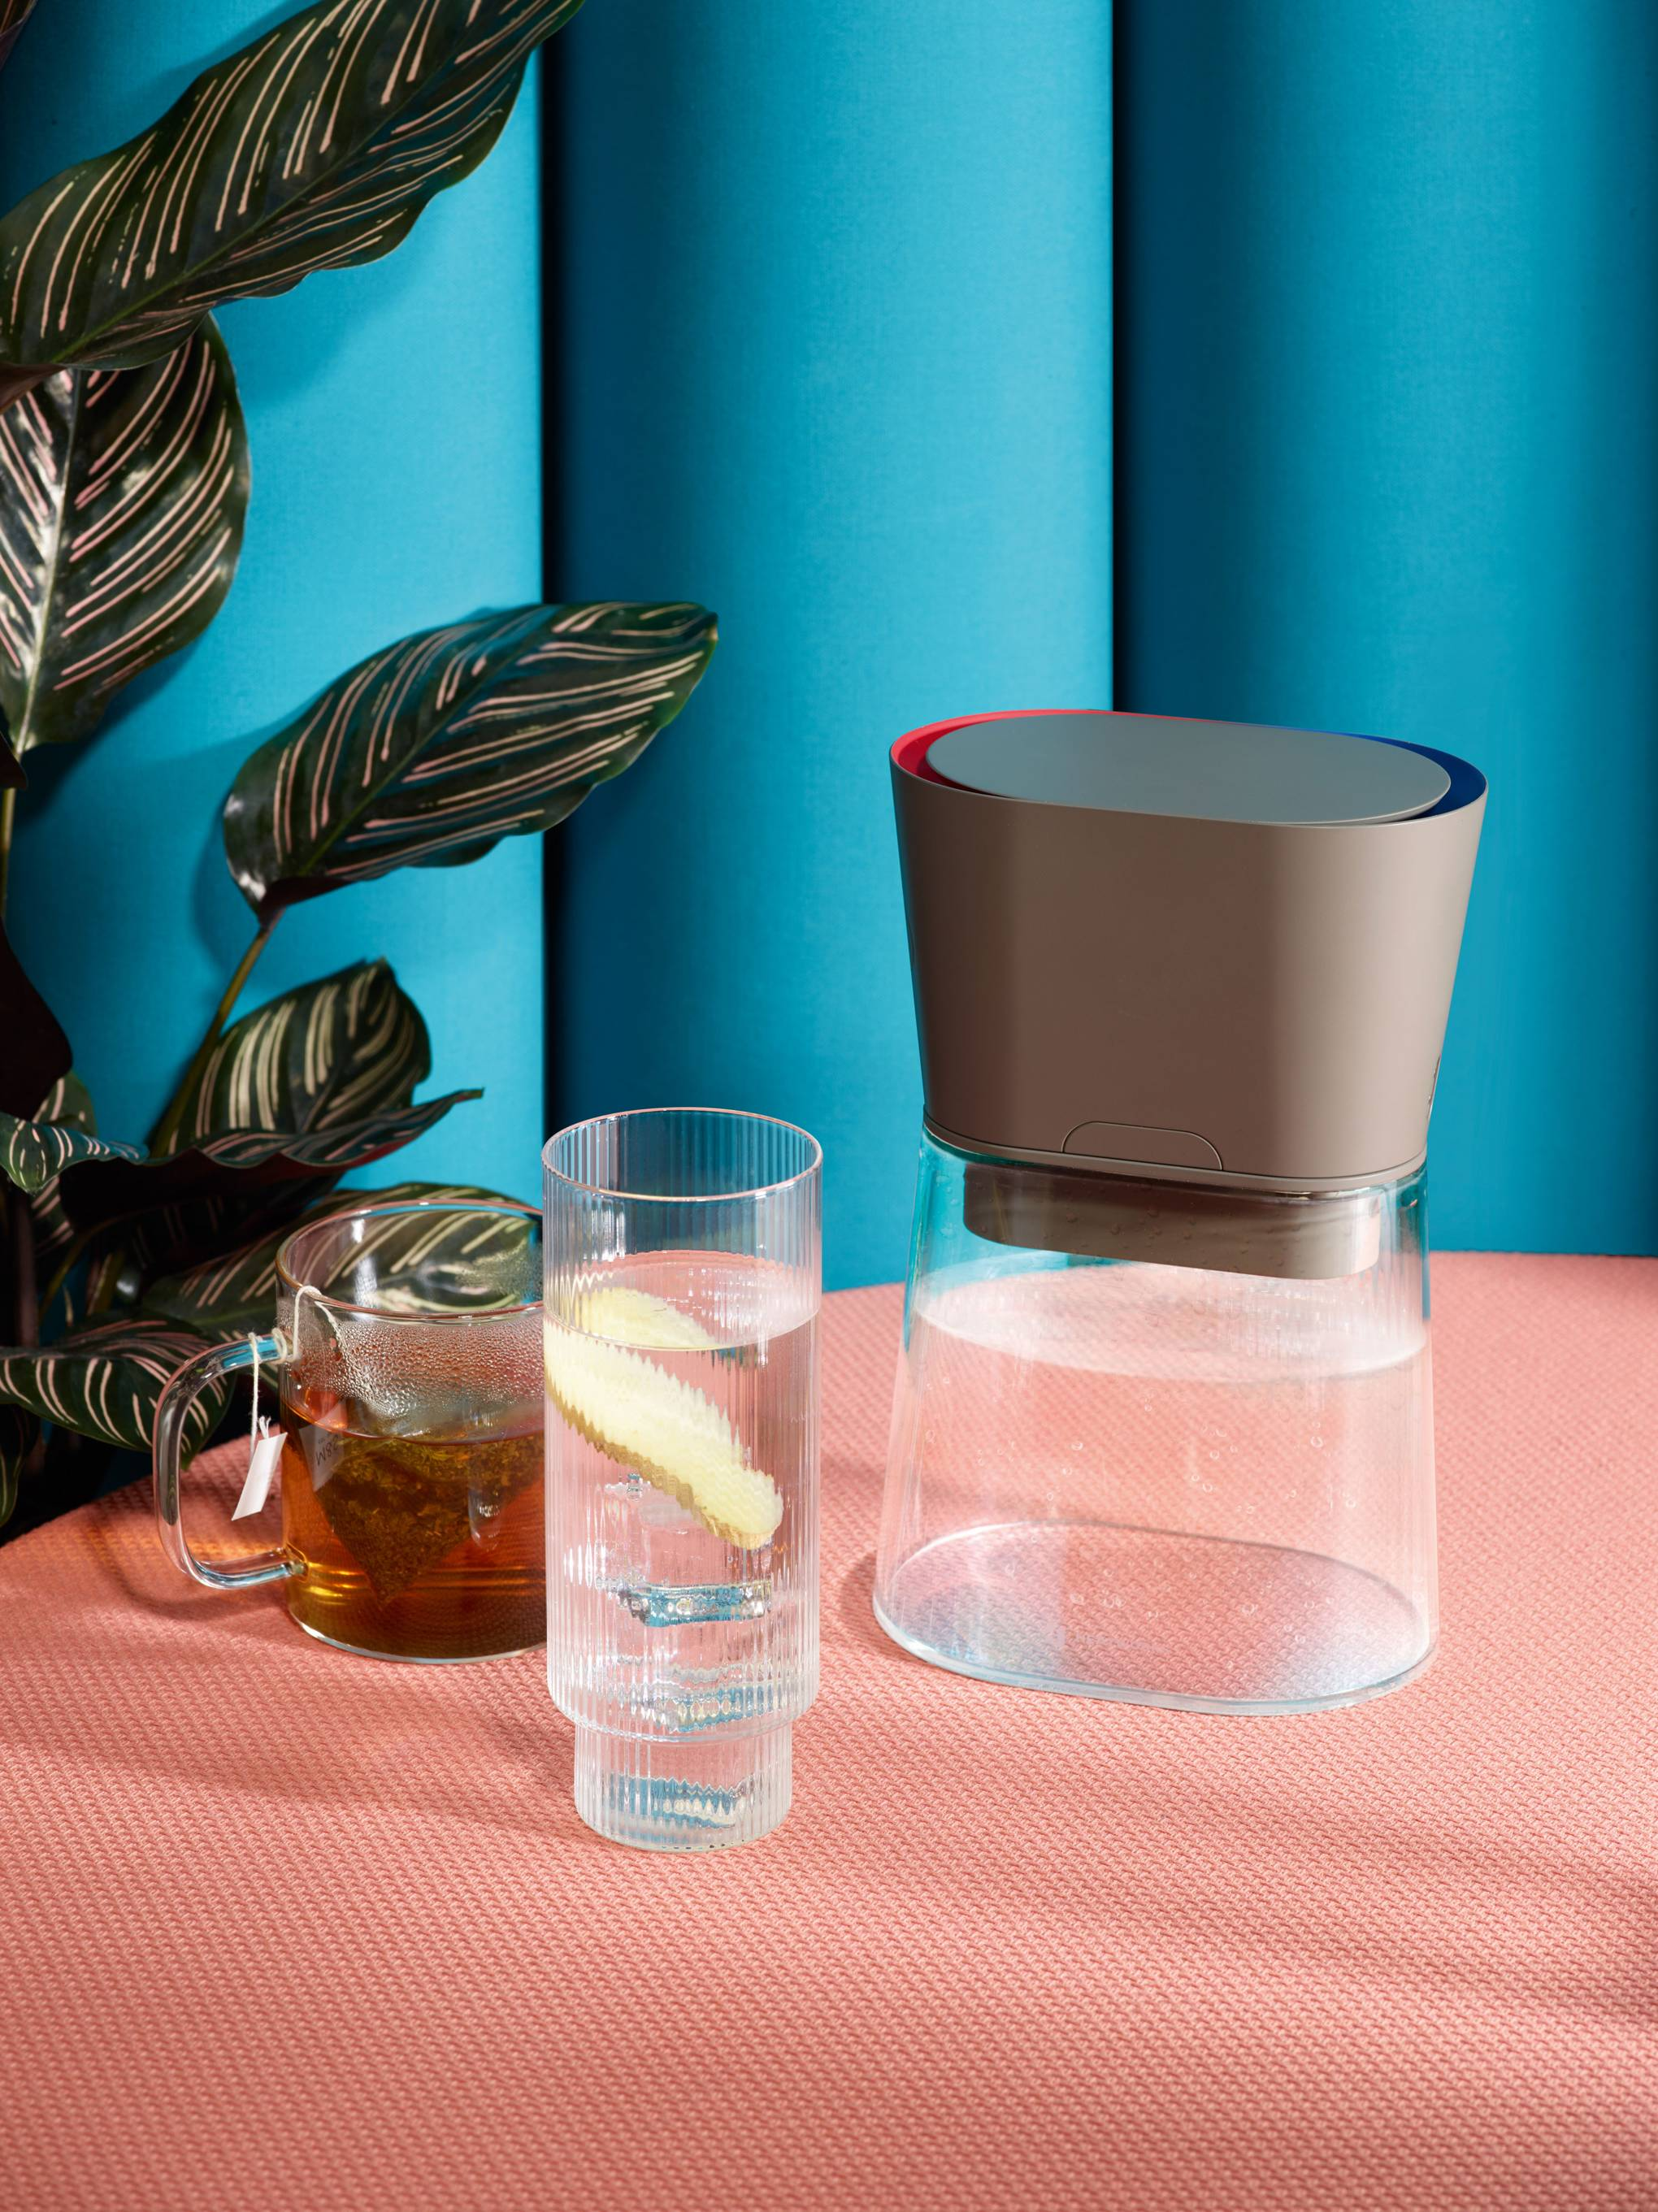 Imbibe some innovation with the best drinking gadgets out